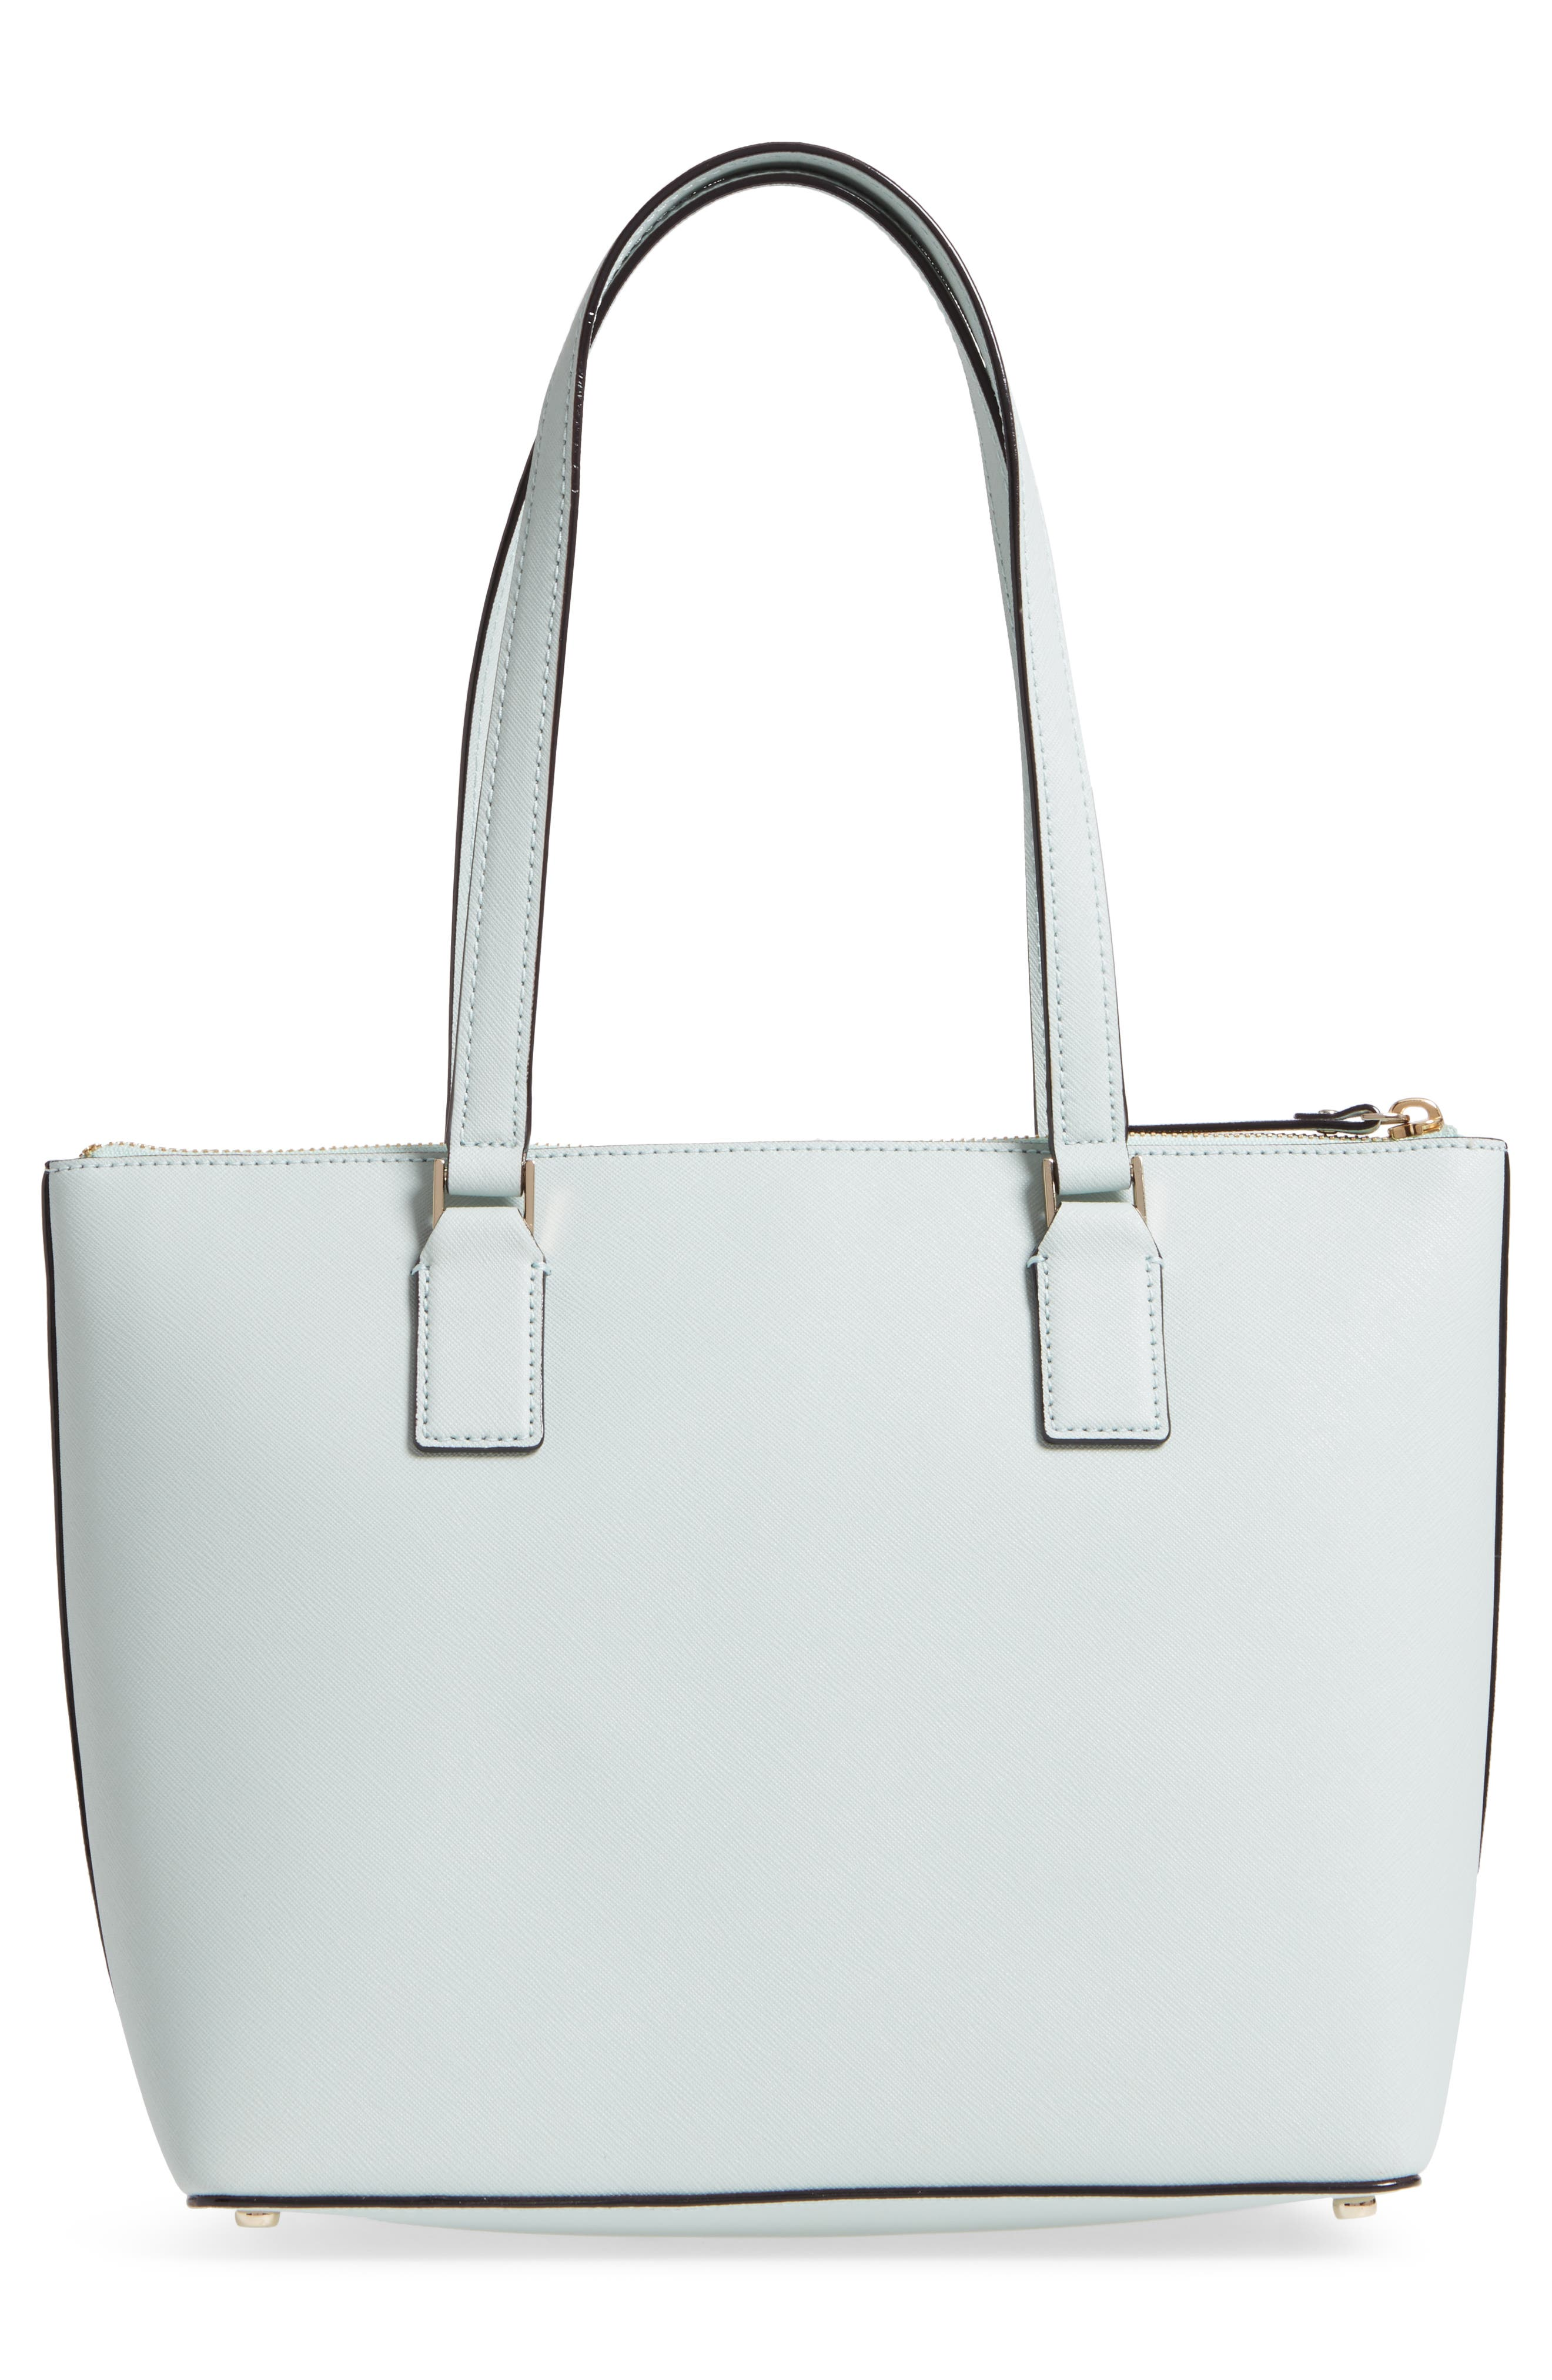 cameron street - small lucie leather tote,                             Alternate thumbnail 3, color,                             Misty Mint